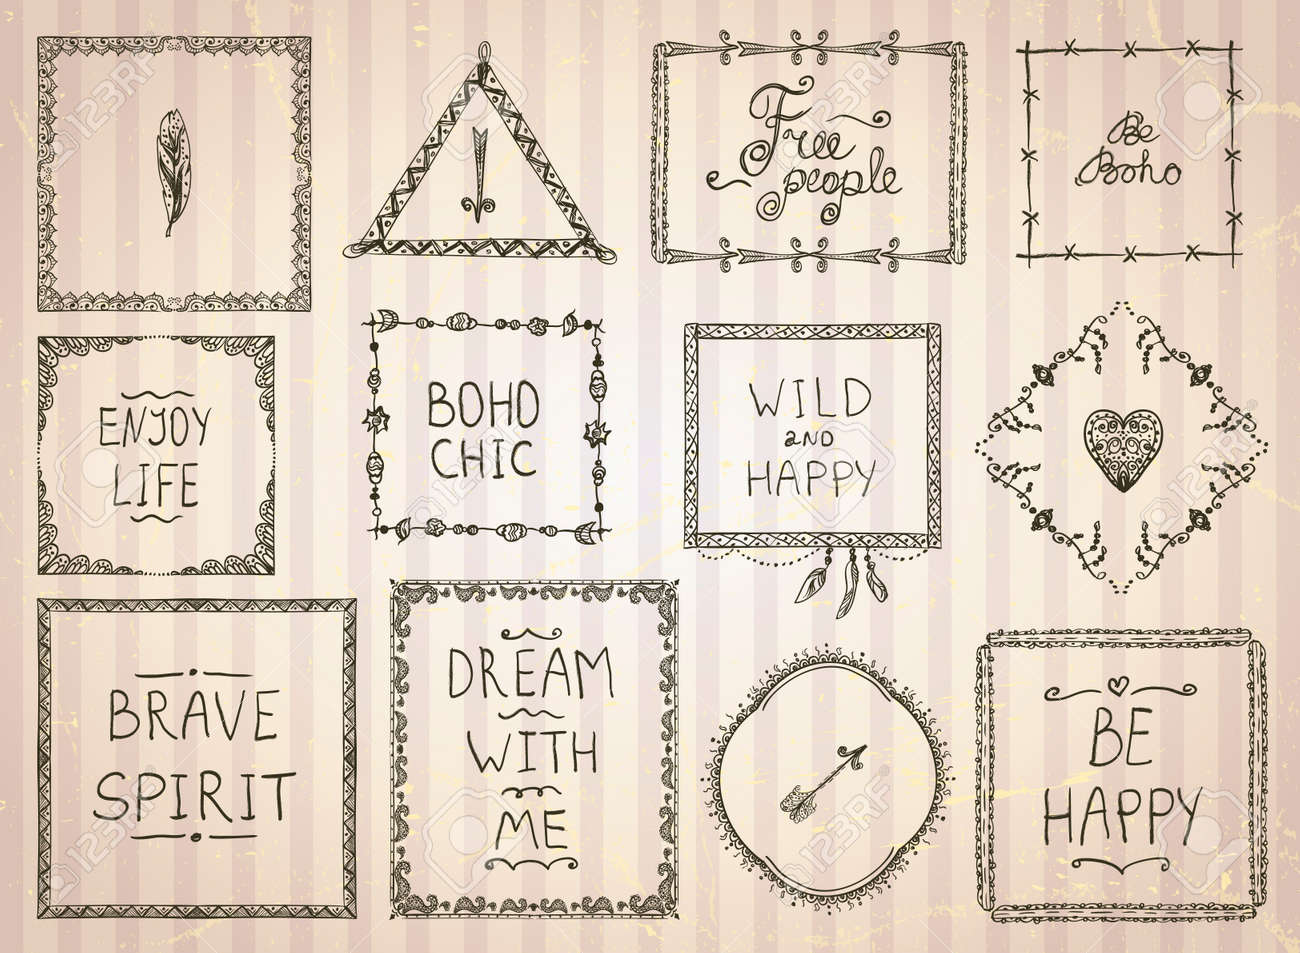 Fashion hand drawn sketch frames and philosophy quote phrases mega set in boho style, hippie, indie style, vector illustration - 61573640